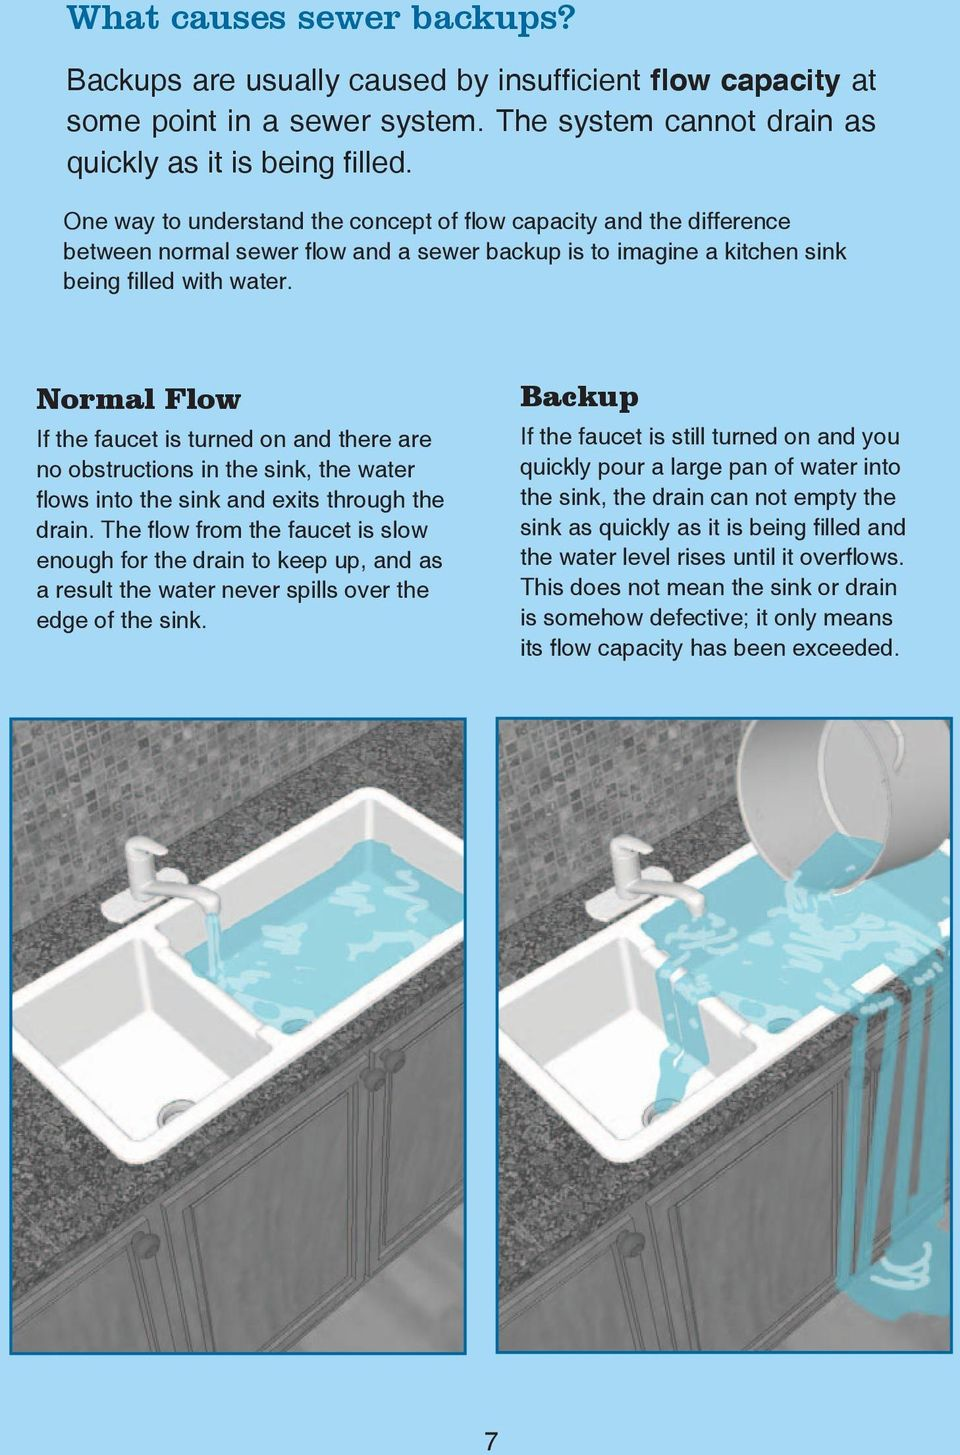 Normal Flow If the faucet is turned on and there are no obstructions in the sink, the water flows into the sink and exits through the drain.